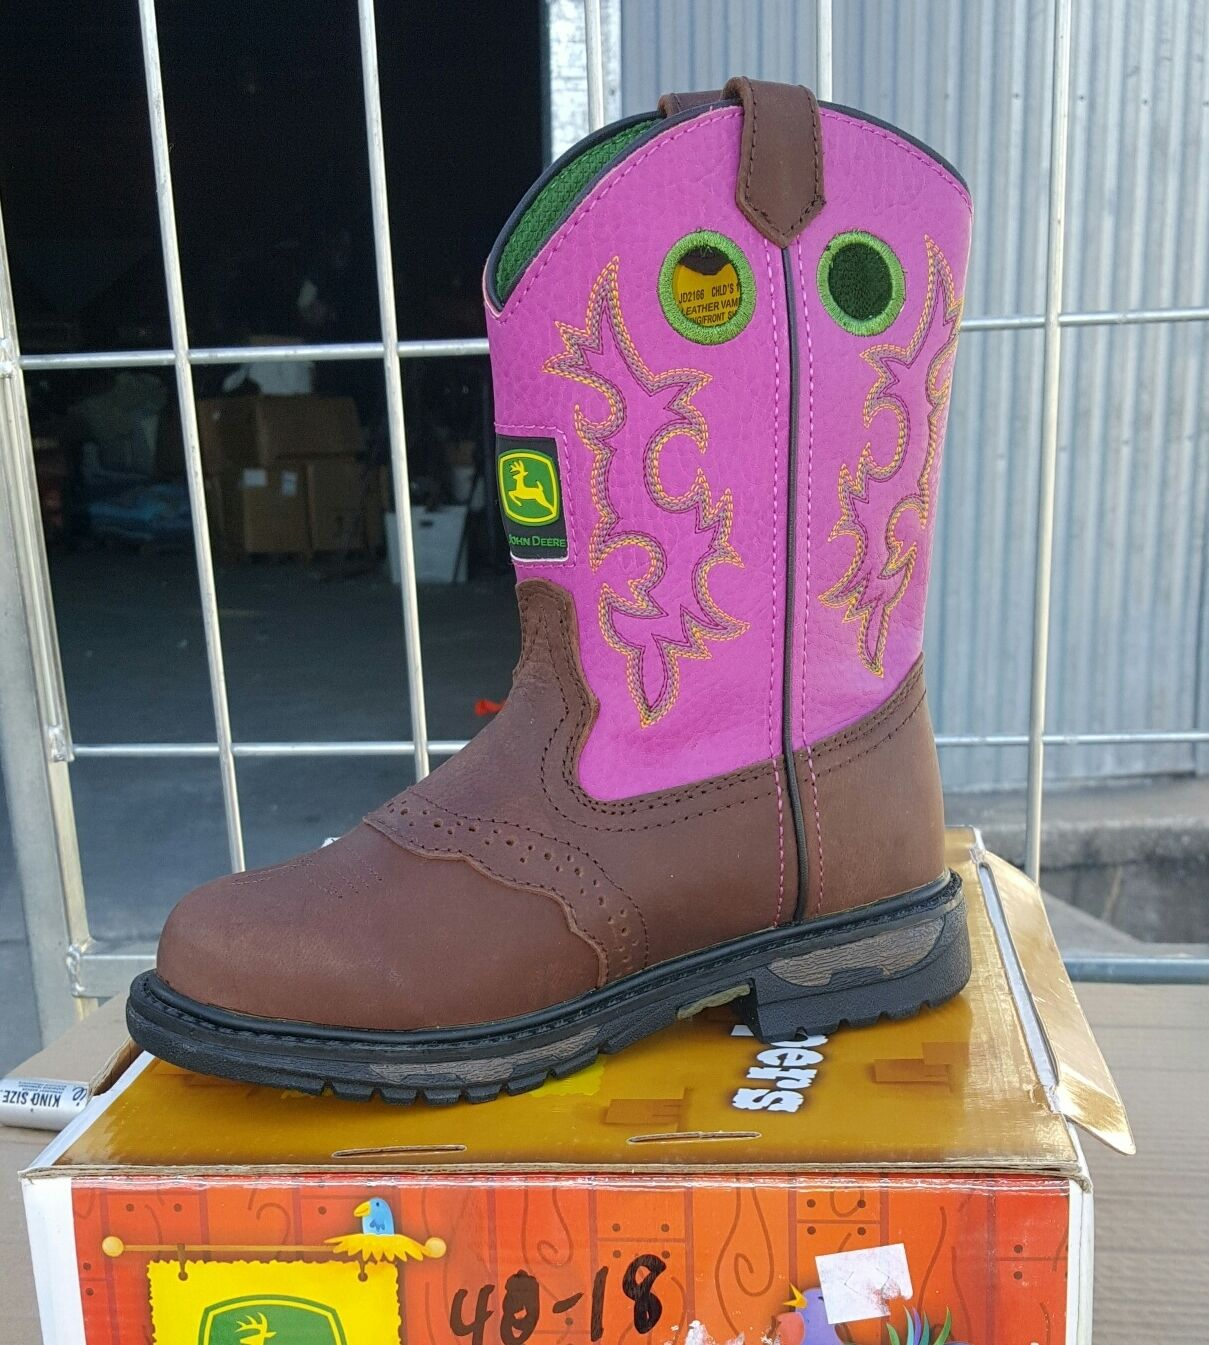 40-19 New youth 2M John Deere Johnny Poppers fushia western boots was 90